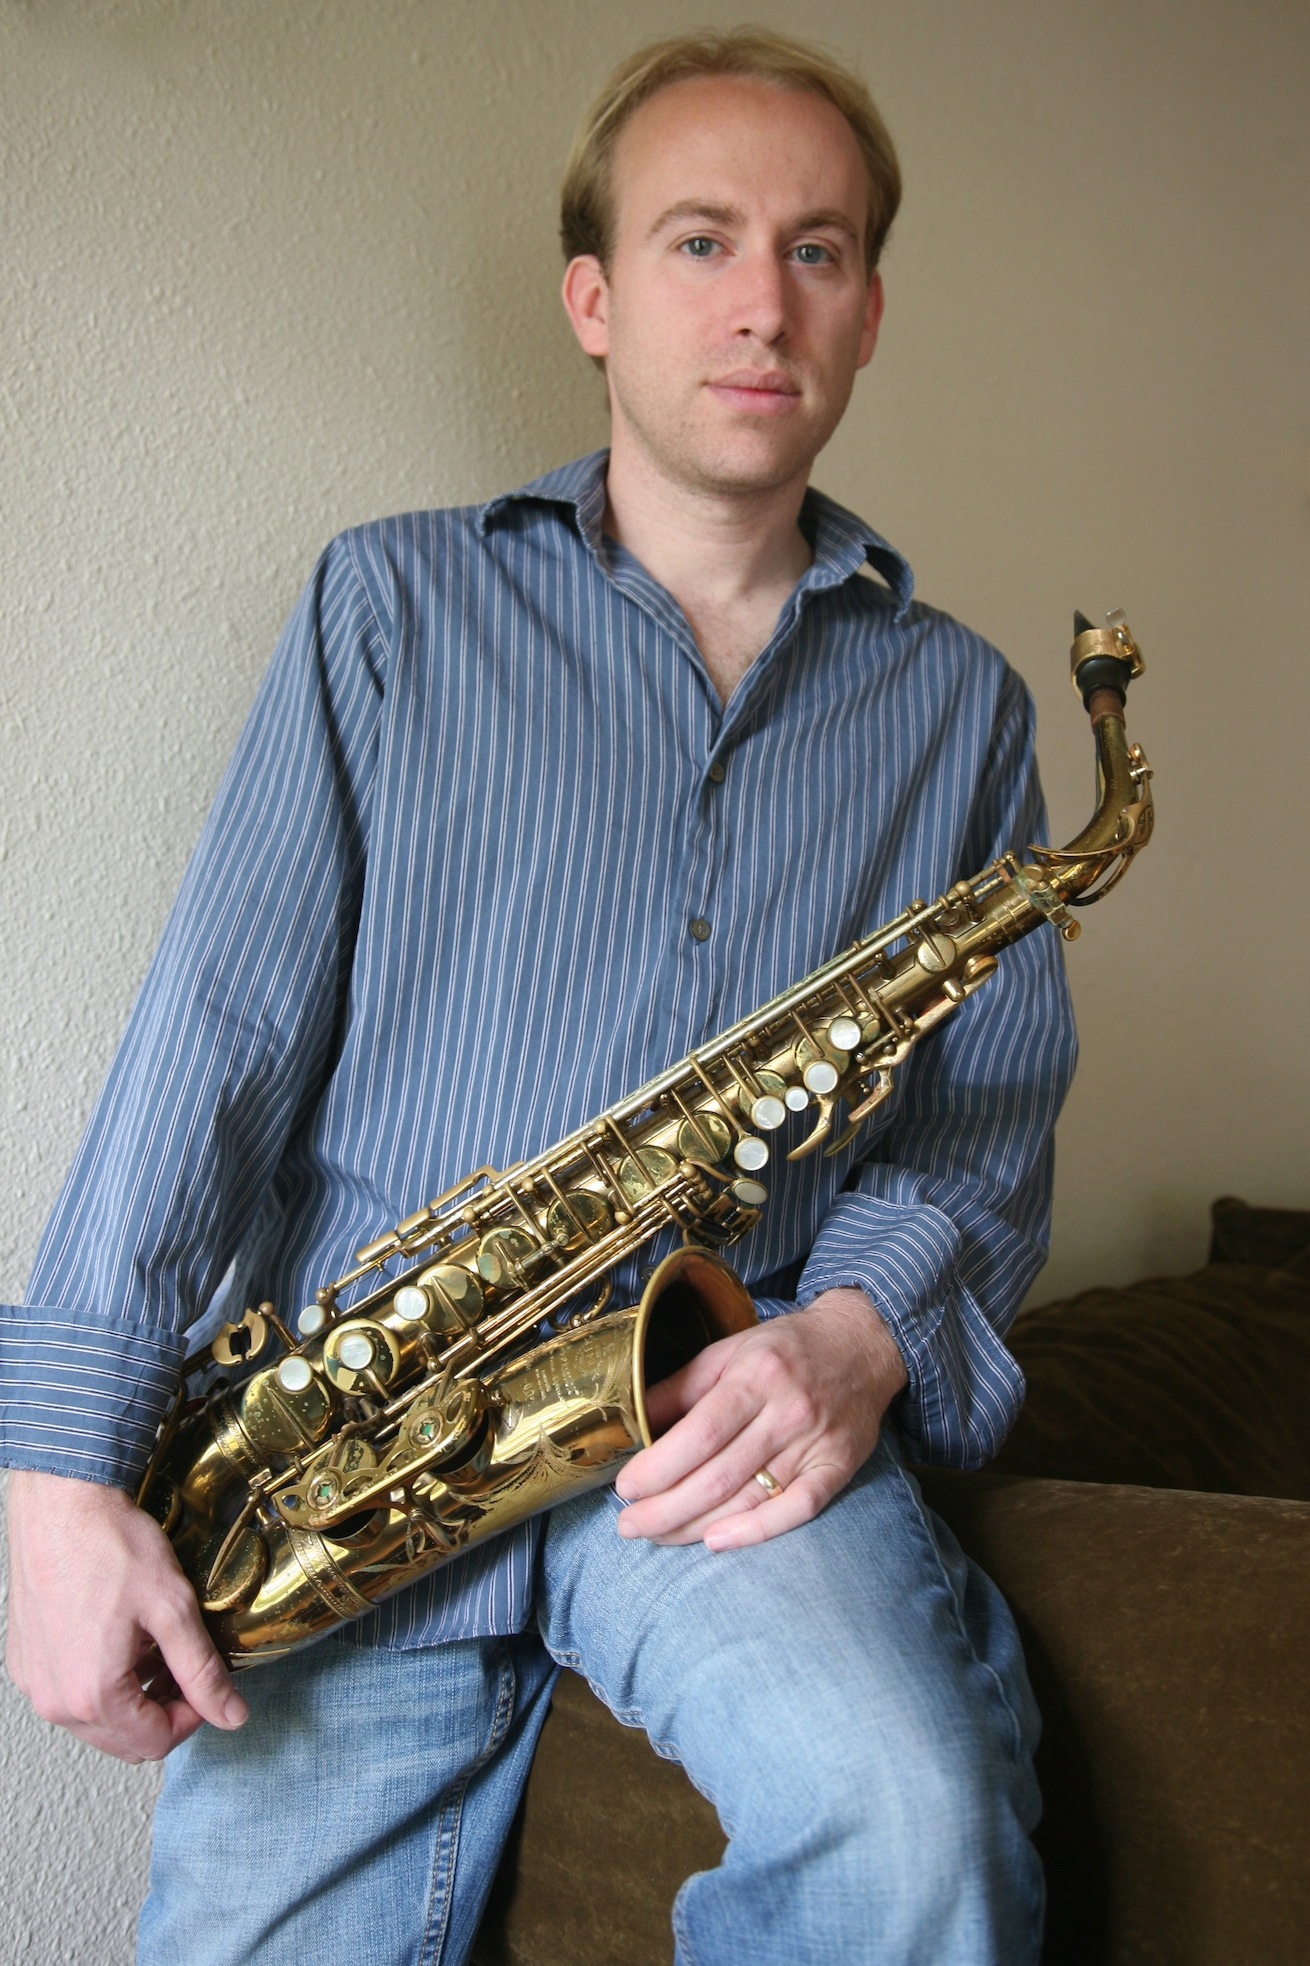 Jason Goldman with his saxophone.